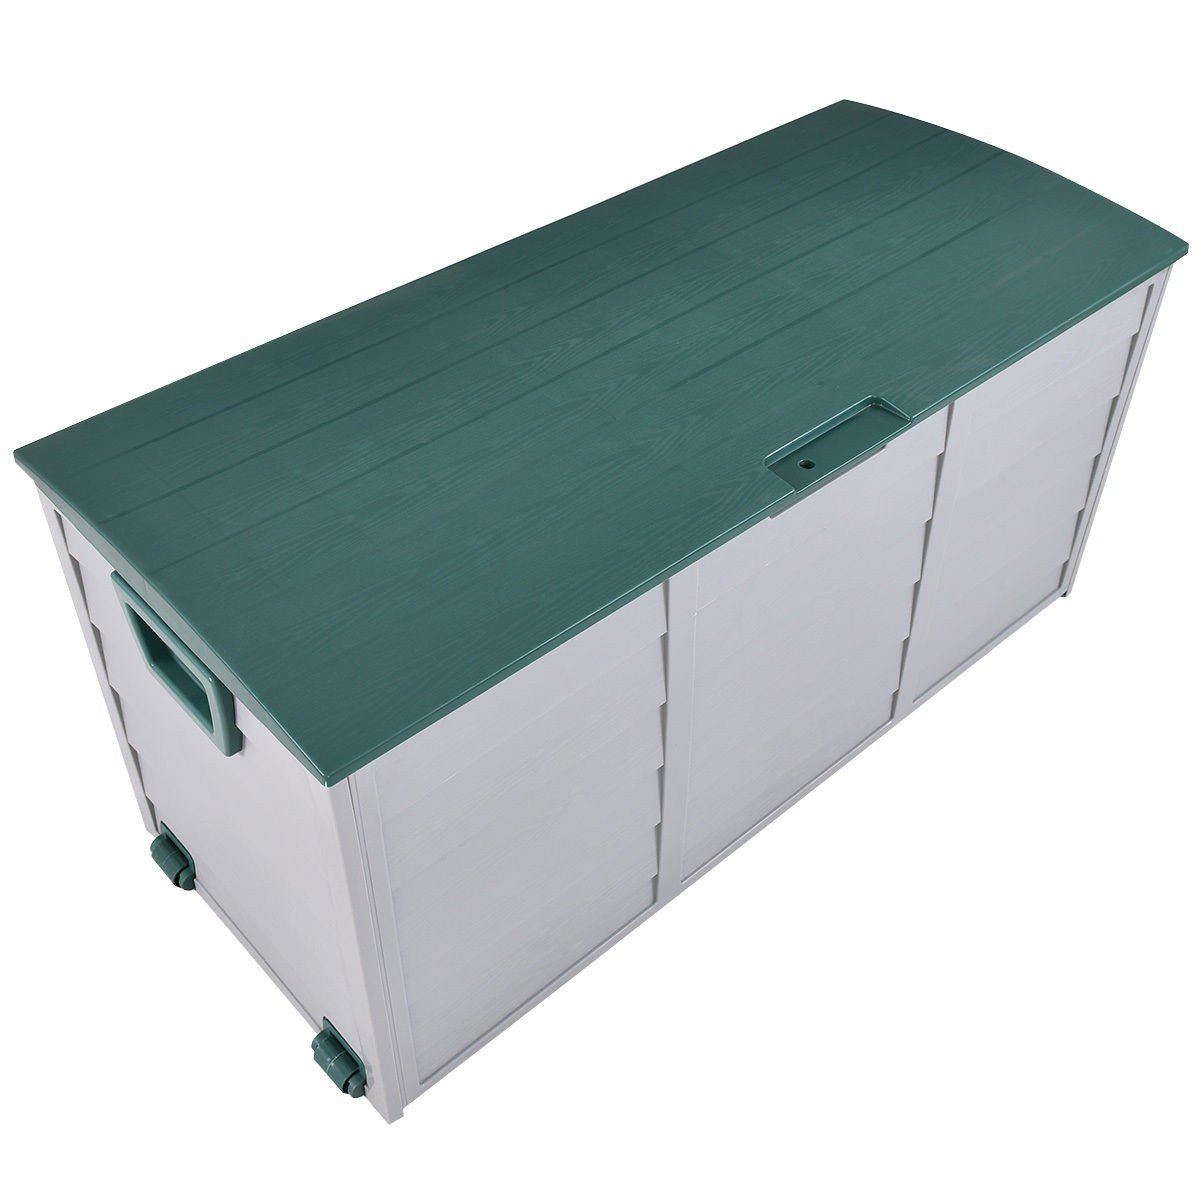 COSTWAY 70 Gallon Durable Outdoor Plasic Storage Box + FREE E-Book by COSTWAY (Image #4)